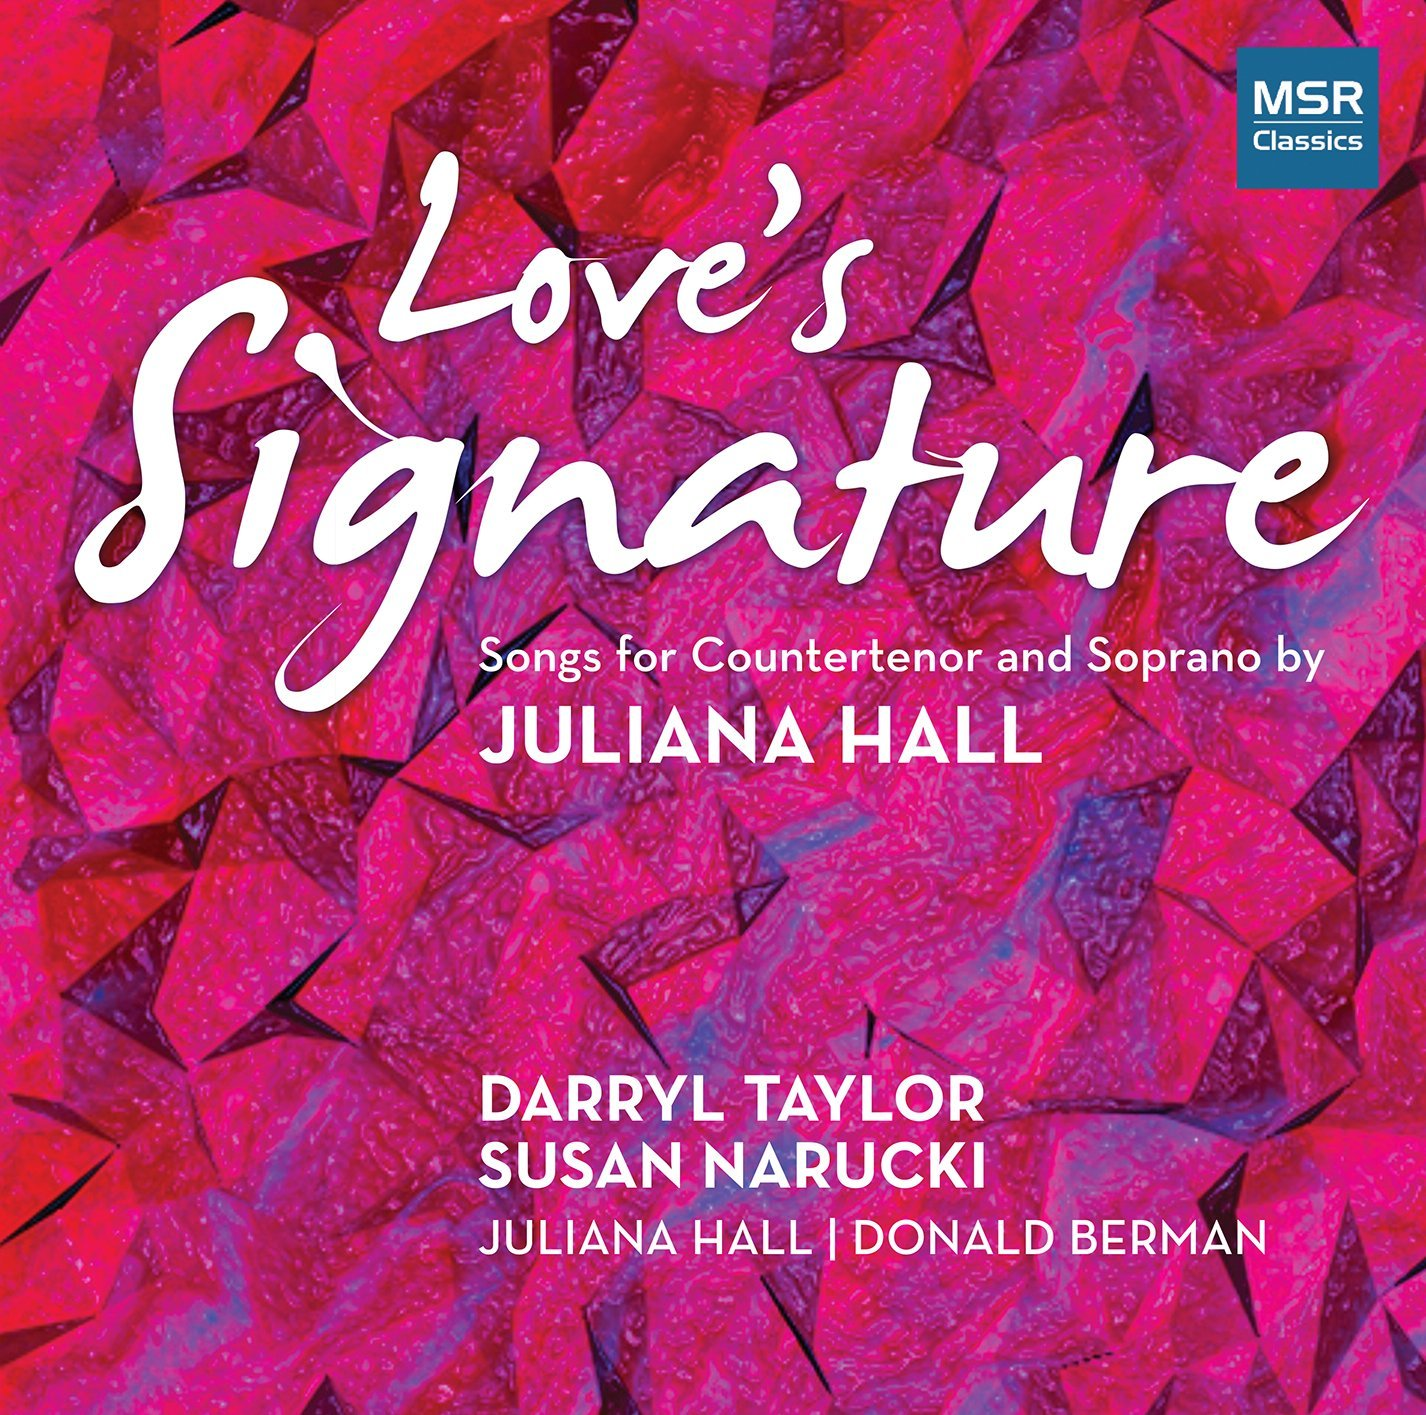 RECORDING OF THE MONTH | March 2017: Juliana Hall - LOVE'S SIGNATURE (MSR Classics MS 1603)